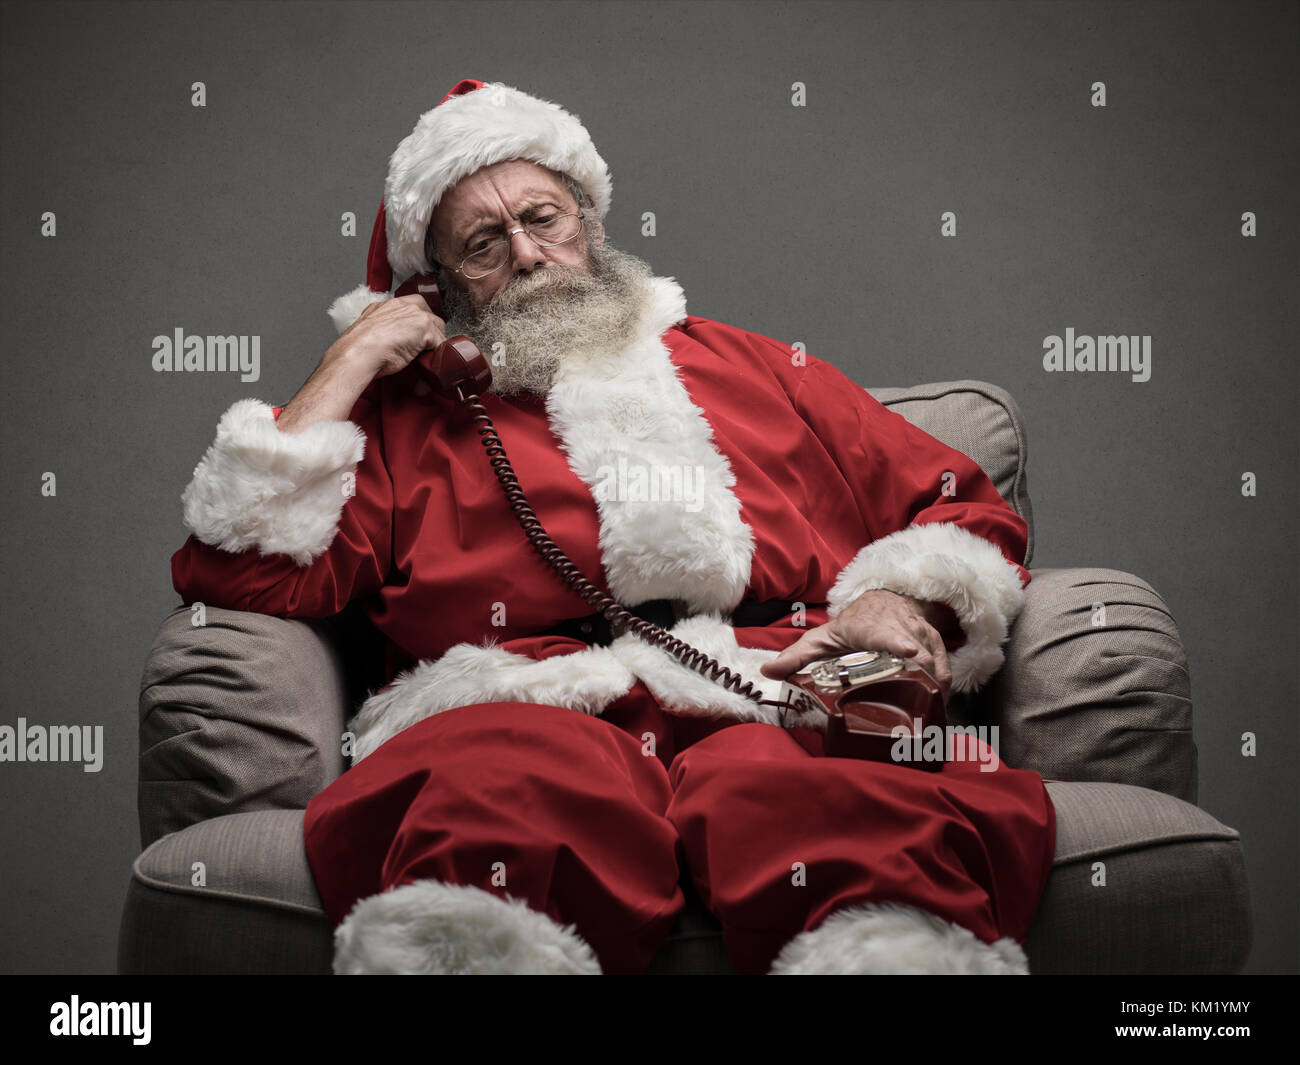 Santa Claus sitting on the armchair and having a phone call, he is holding a receiver and listening - Stock Image